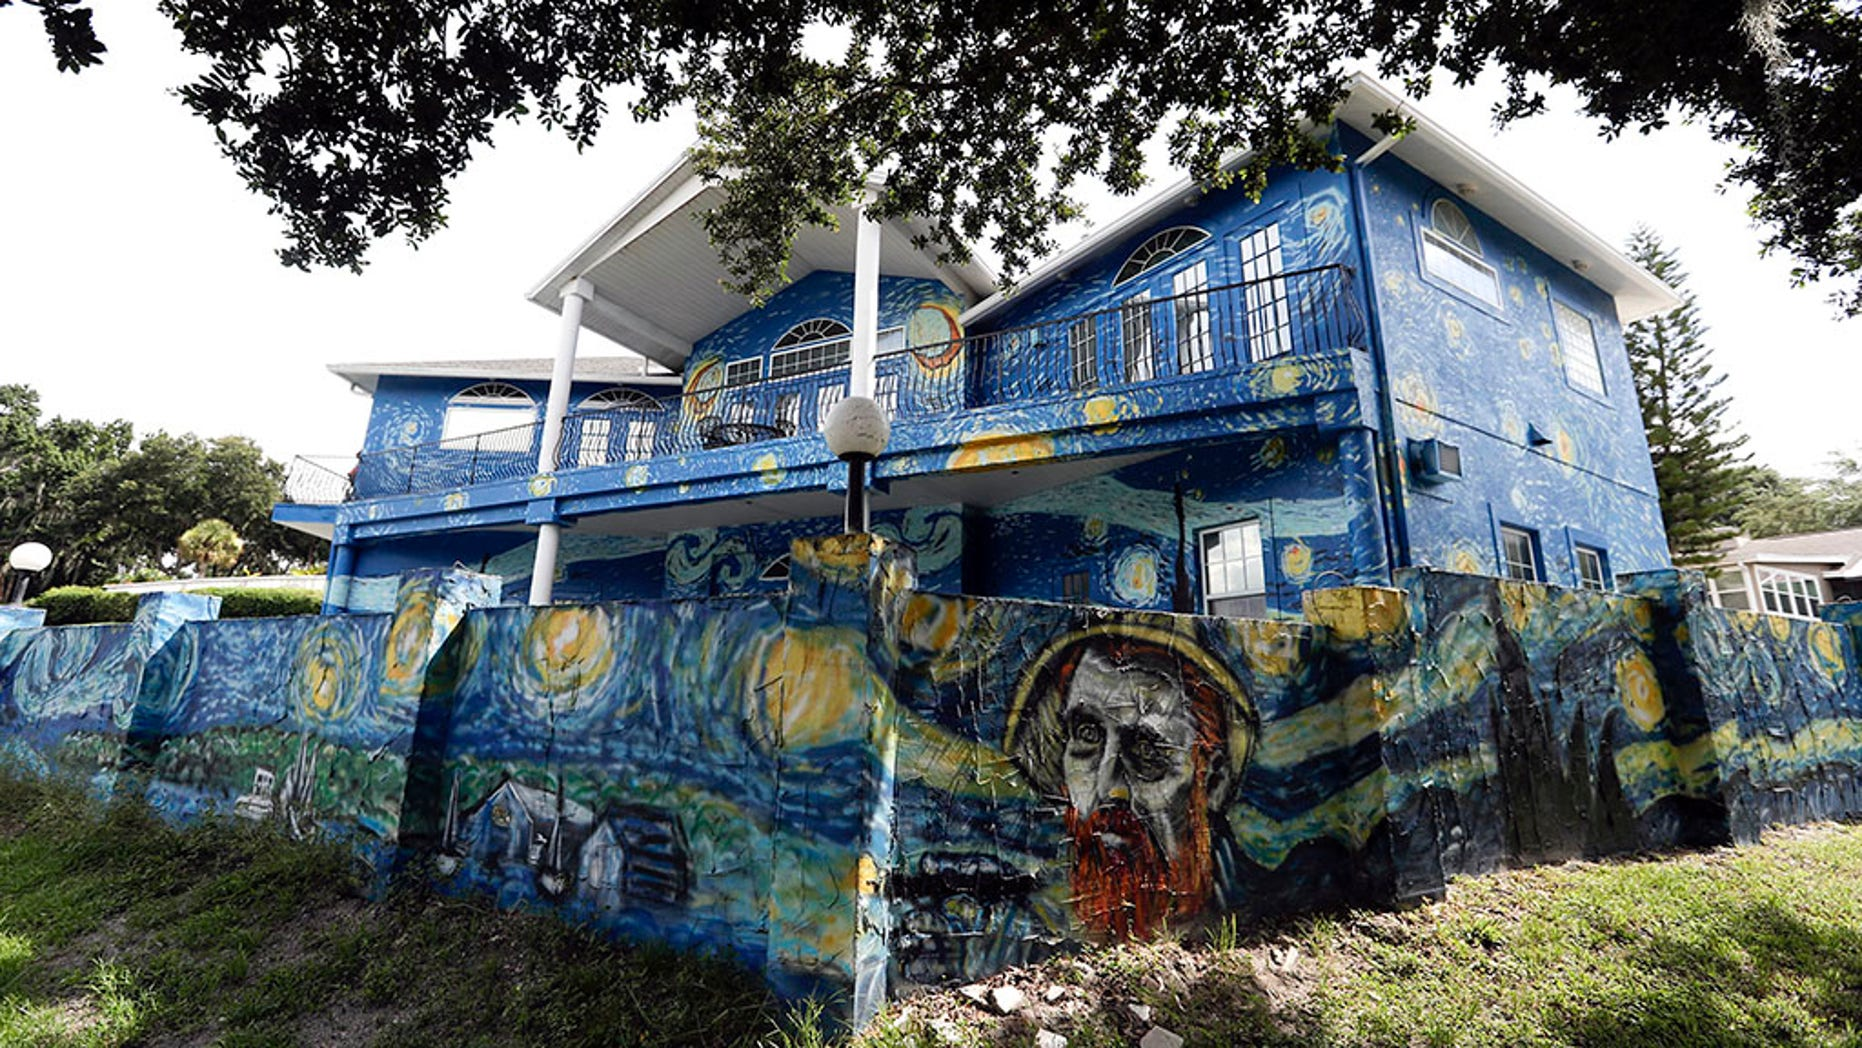 This Wednesday, July 18, 2018 photo shows the painted exterior of the home of Lubomir Jastrzebski and Nancy Nemhauseer in Mount Dora, Fla.